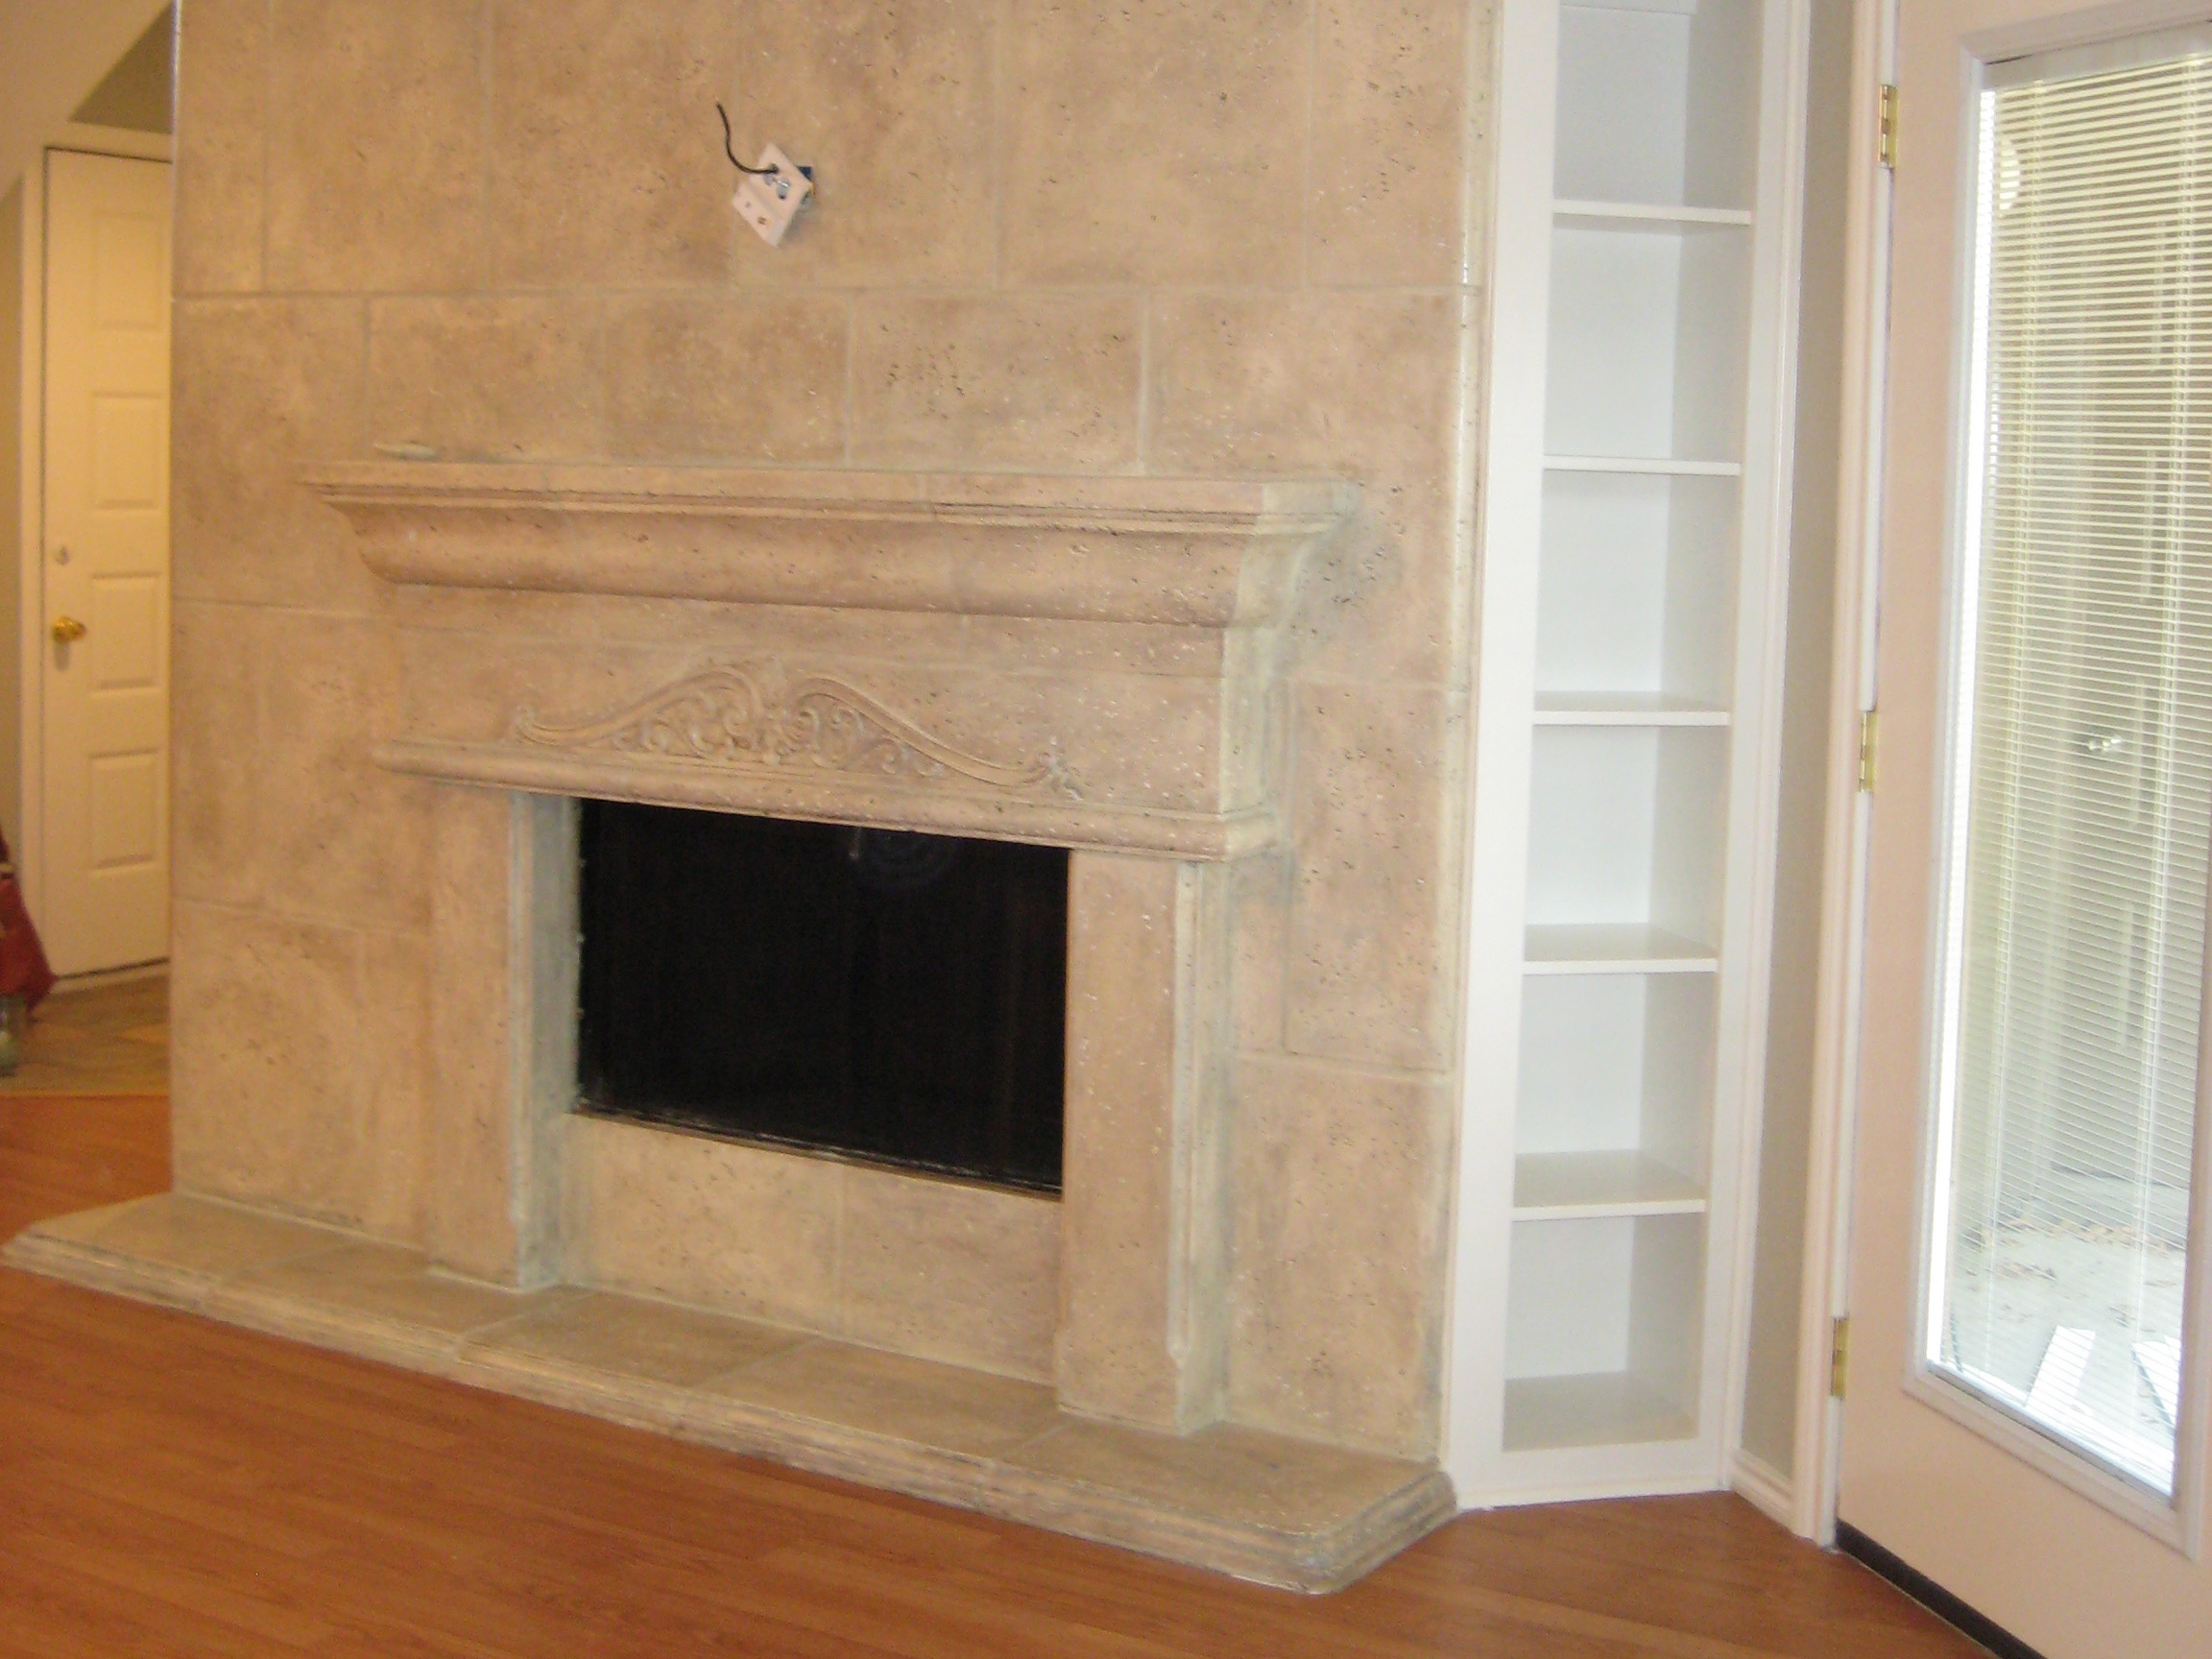 basement grand project renovation wall in img the around concept portfolio fireplace open mississauga contracting stone